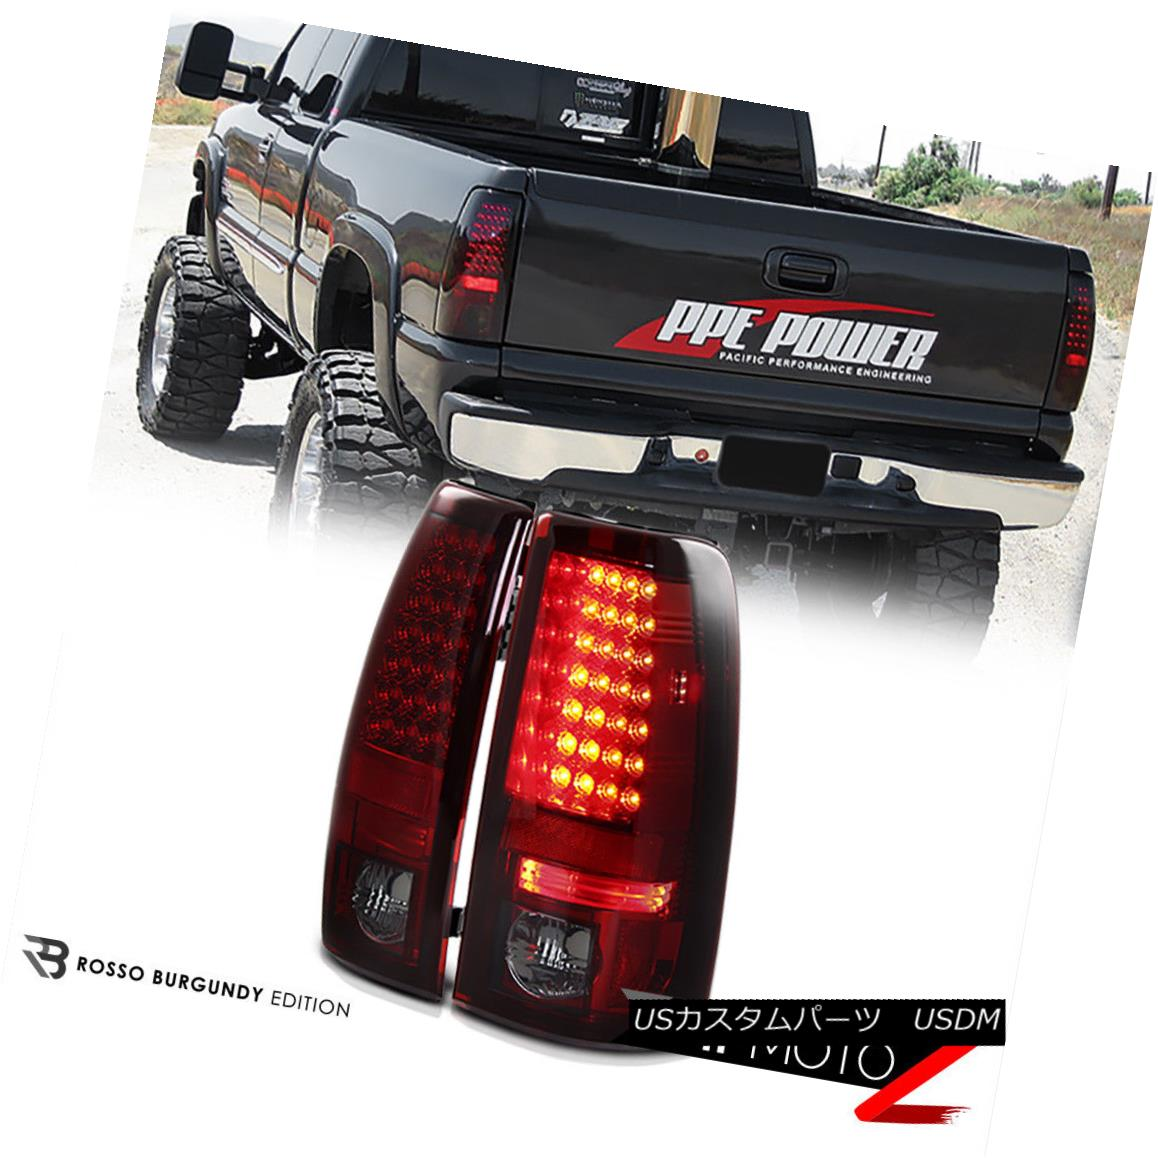 テールライト Chevy Silverado/Sierra Silverado 1500 Sier/2500 V8 2003-2006 L+R L Smoke/Red LED Tail Light Lamp Chevy Silverado/ Sier ra 1500/2500 V8 2003-2006 L + R煙/赤LEDテールライトランプ, トータルビル用品:aced6aa2 --- officewill.xsrv.jp